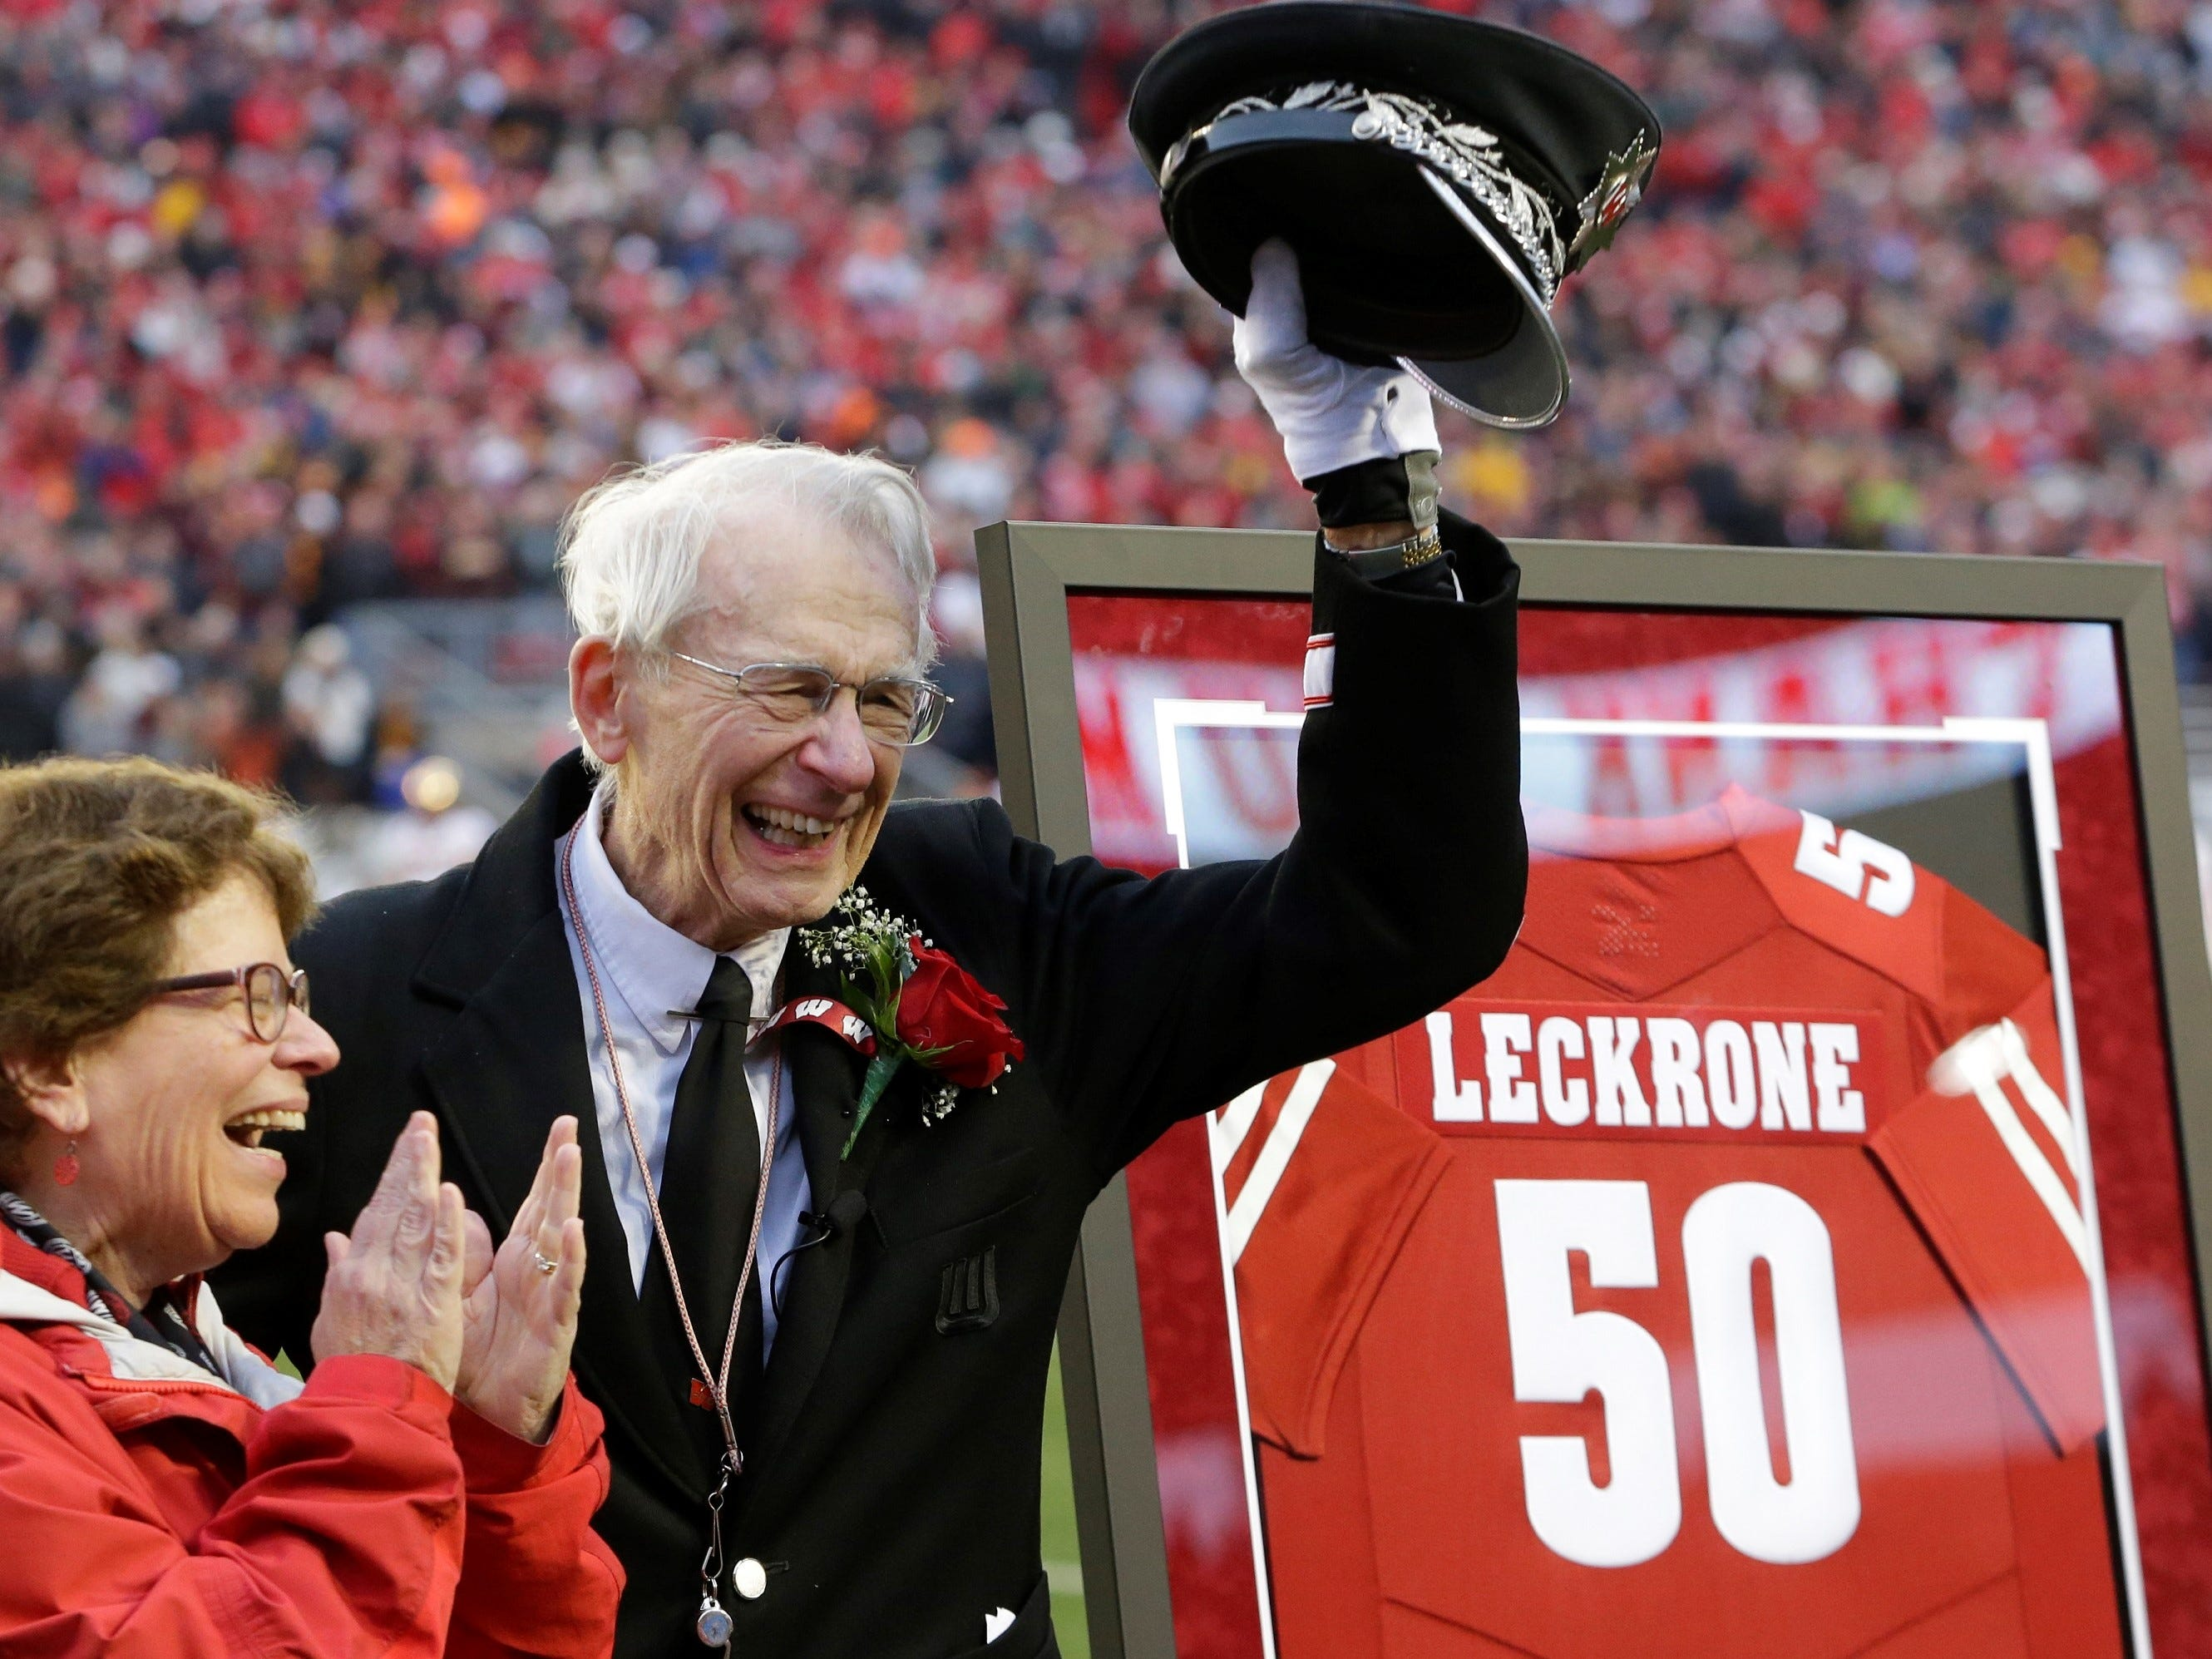 After 50 years leading UW marching band, Mike Leckrone leaves Camp Randall